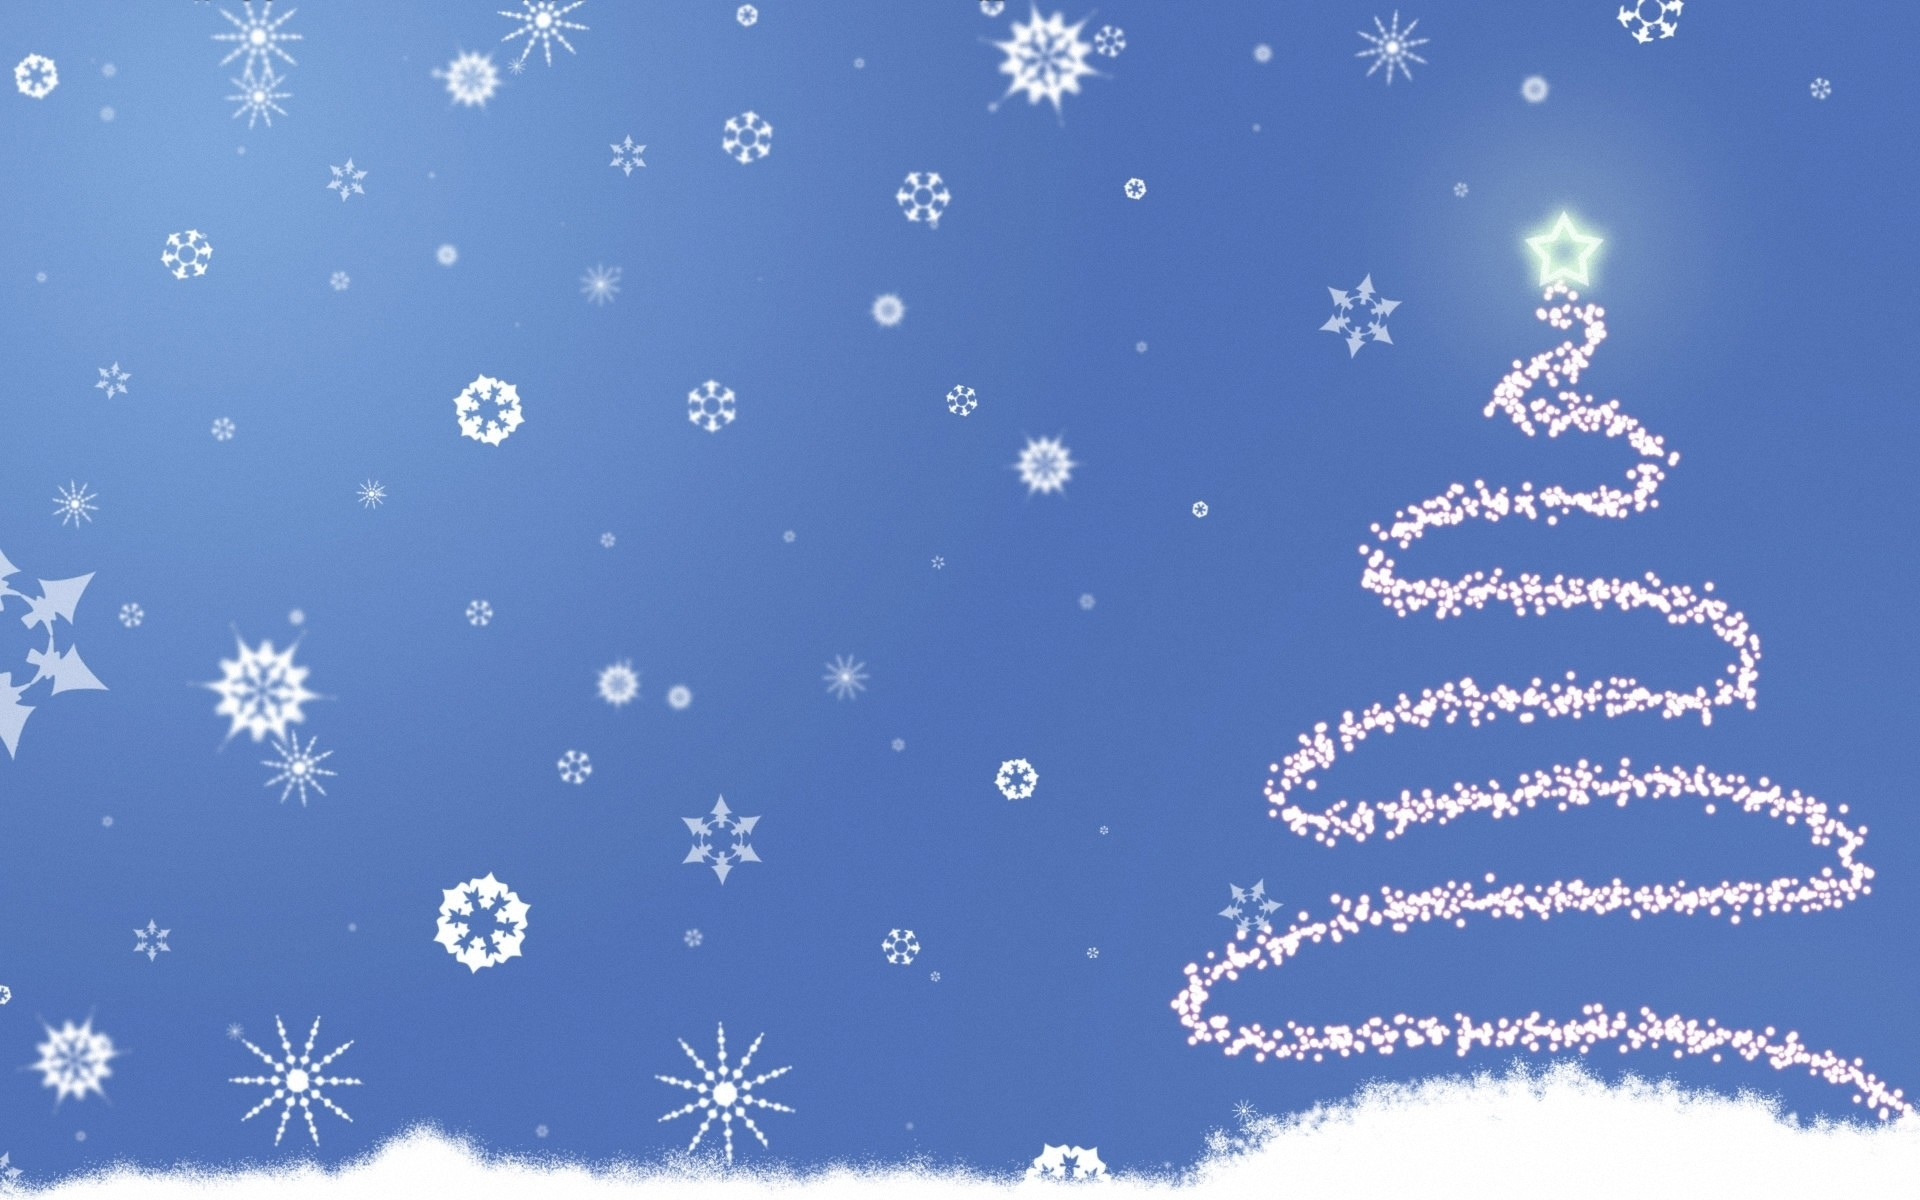 1920x1200 Collection of Xmas Backgrounds, Xmas HQFX Wallpapers